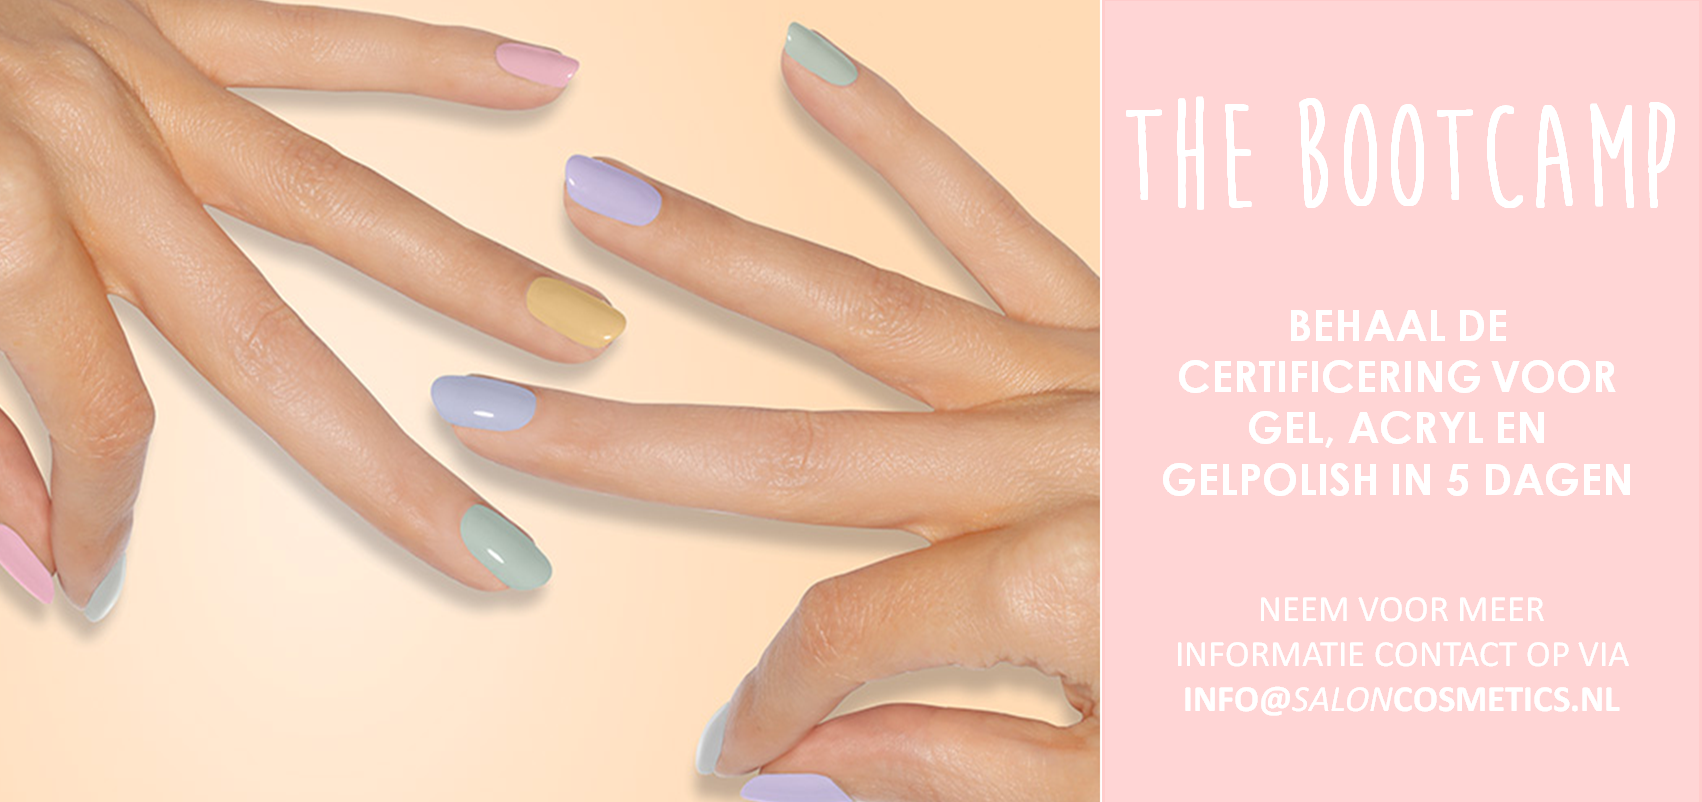 Bootcamp opleiding nagelstyling